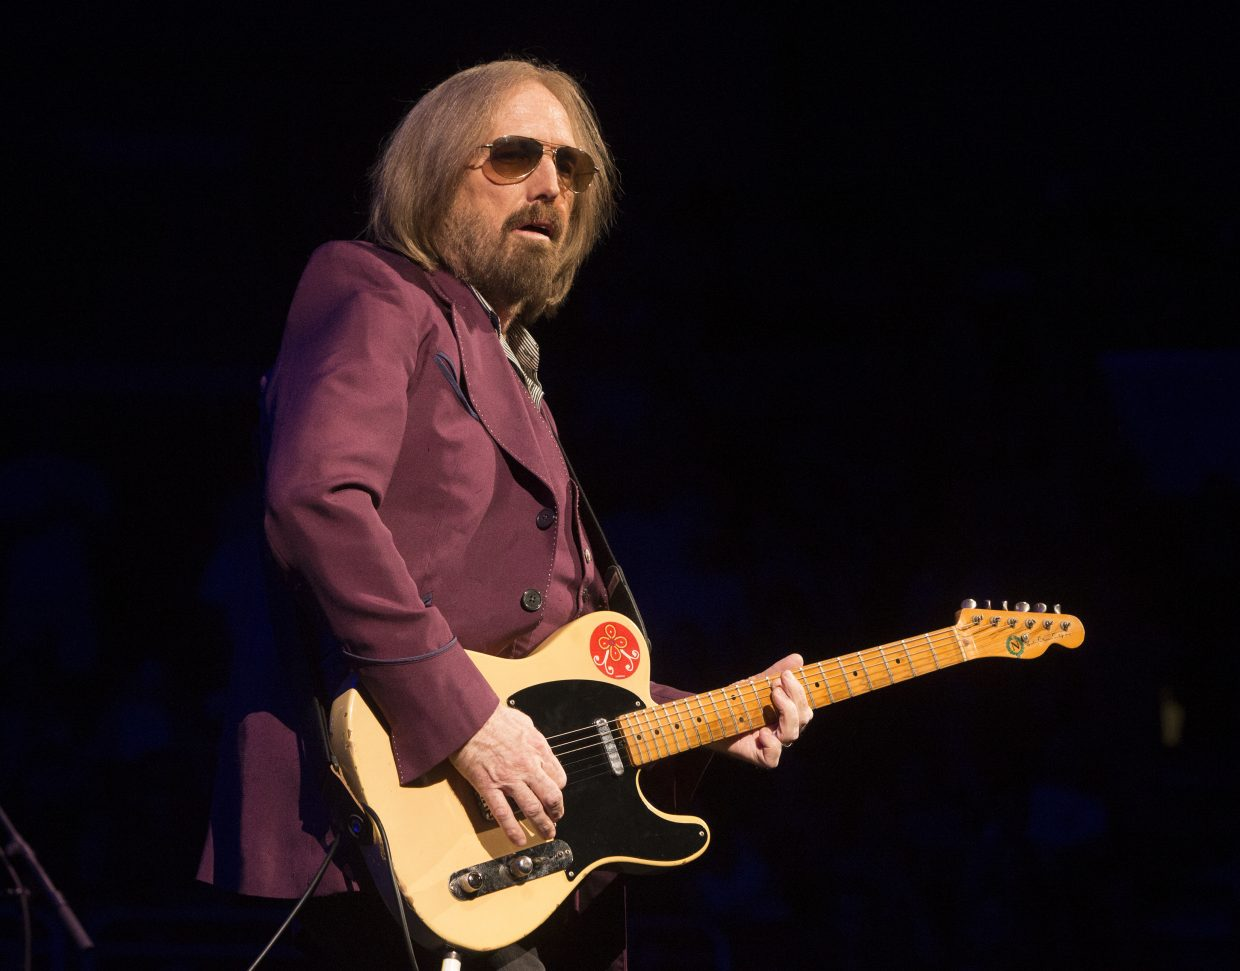 Watch Video of Tom Petty at DTE in July